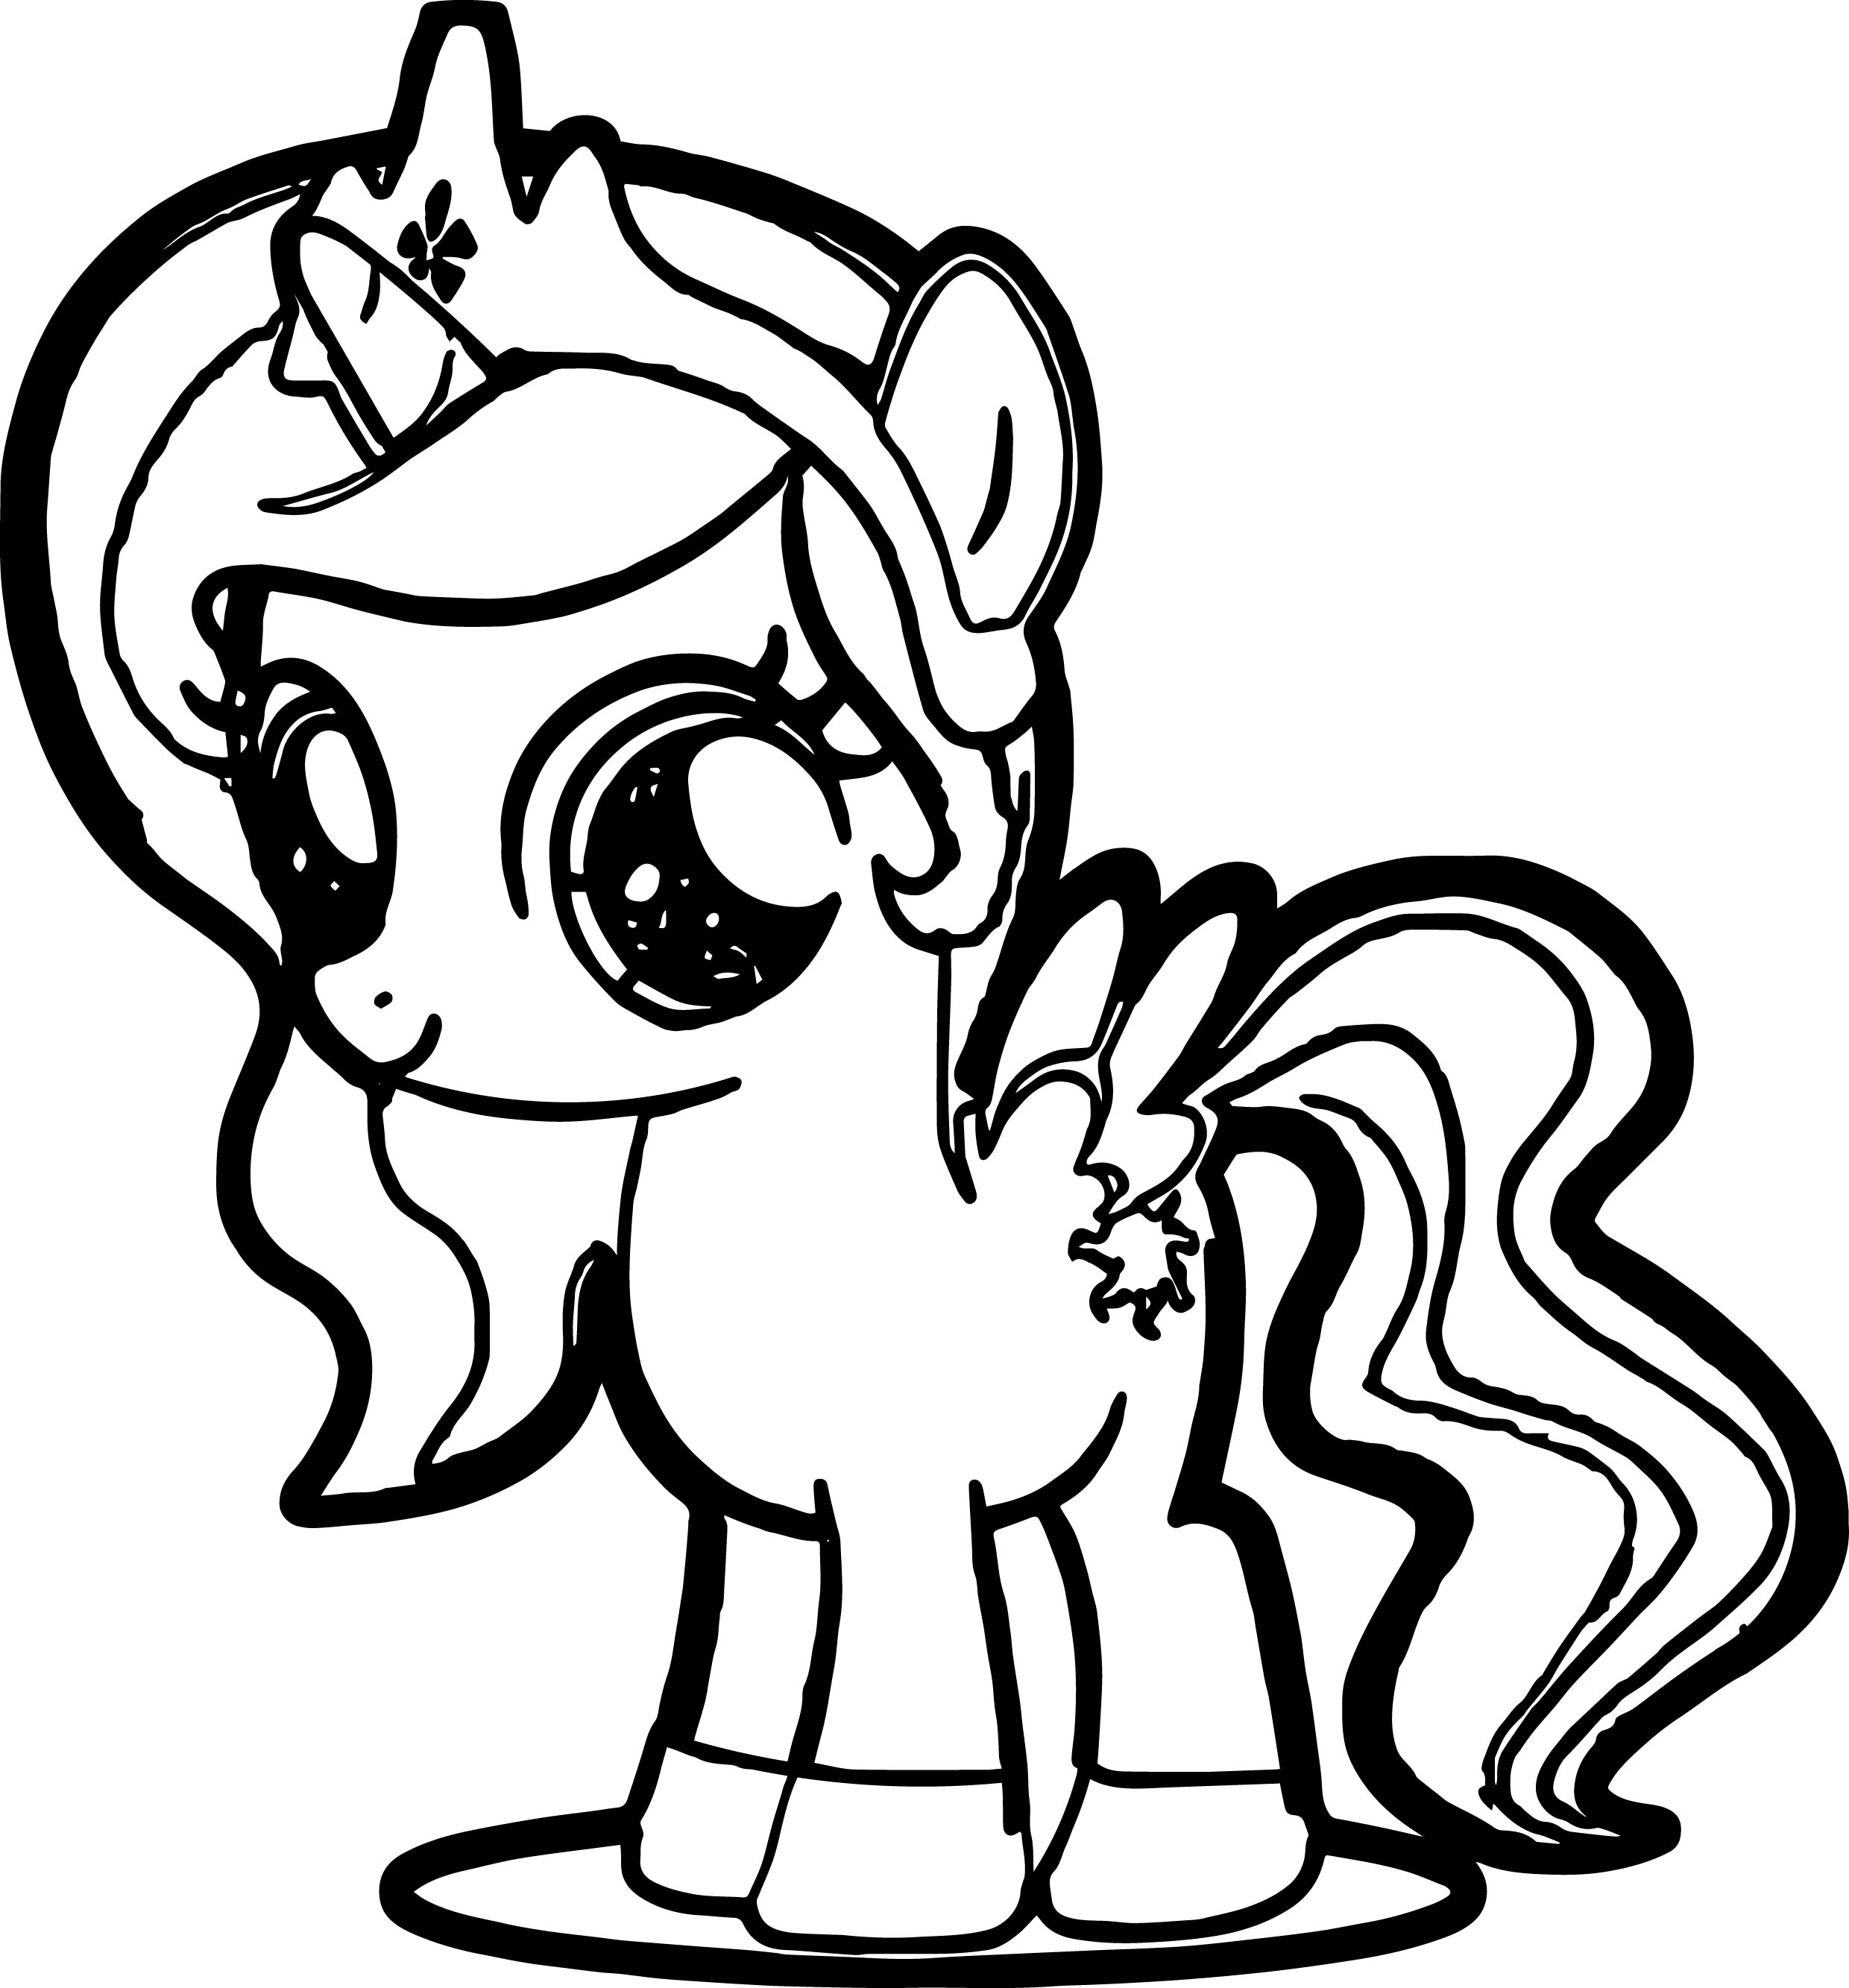 Coloring cute little pony